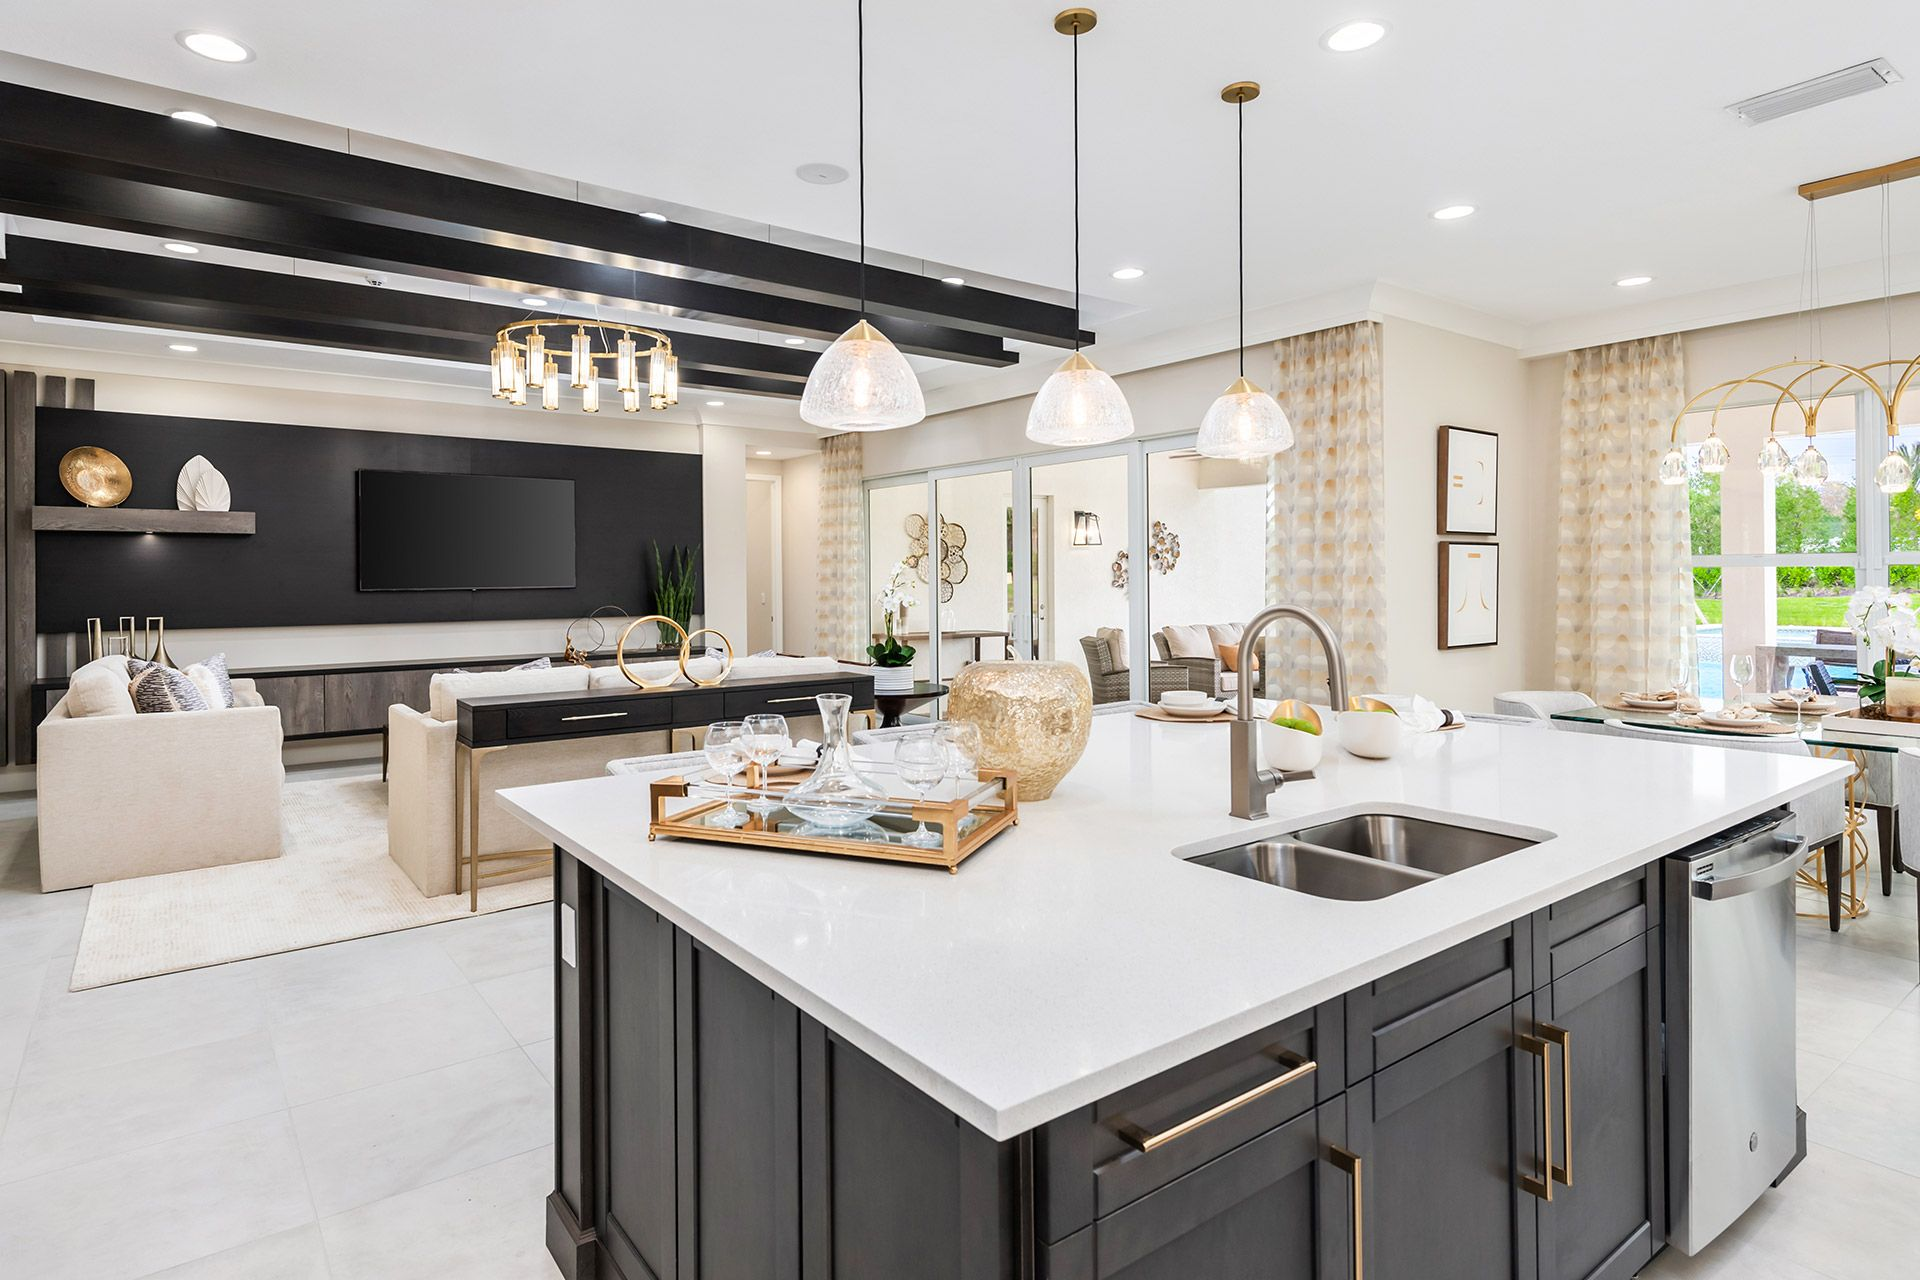 Kitchen featured in the Sunrise By GL Homes in Naples, FL